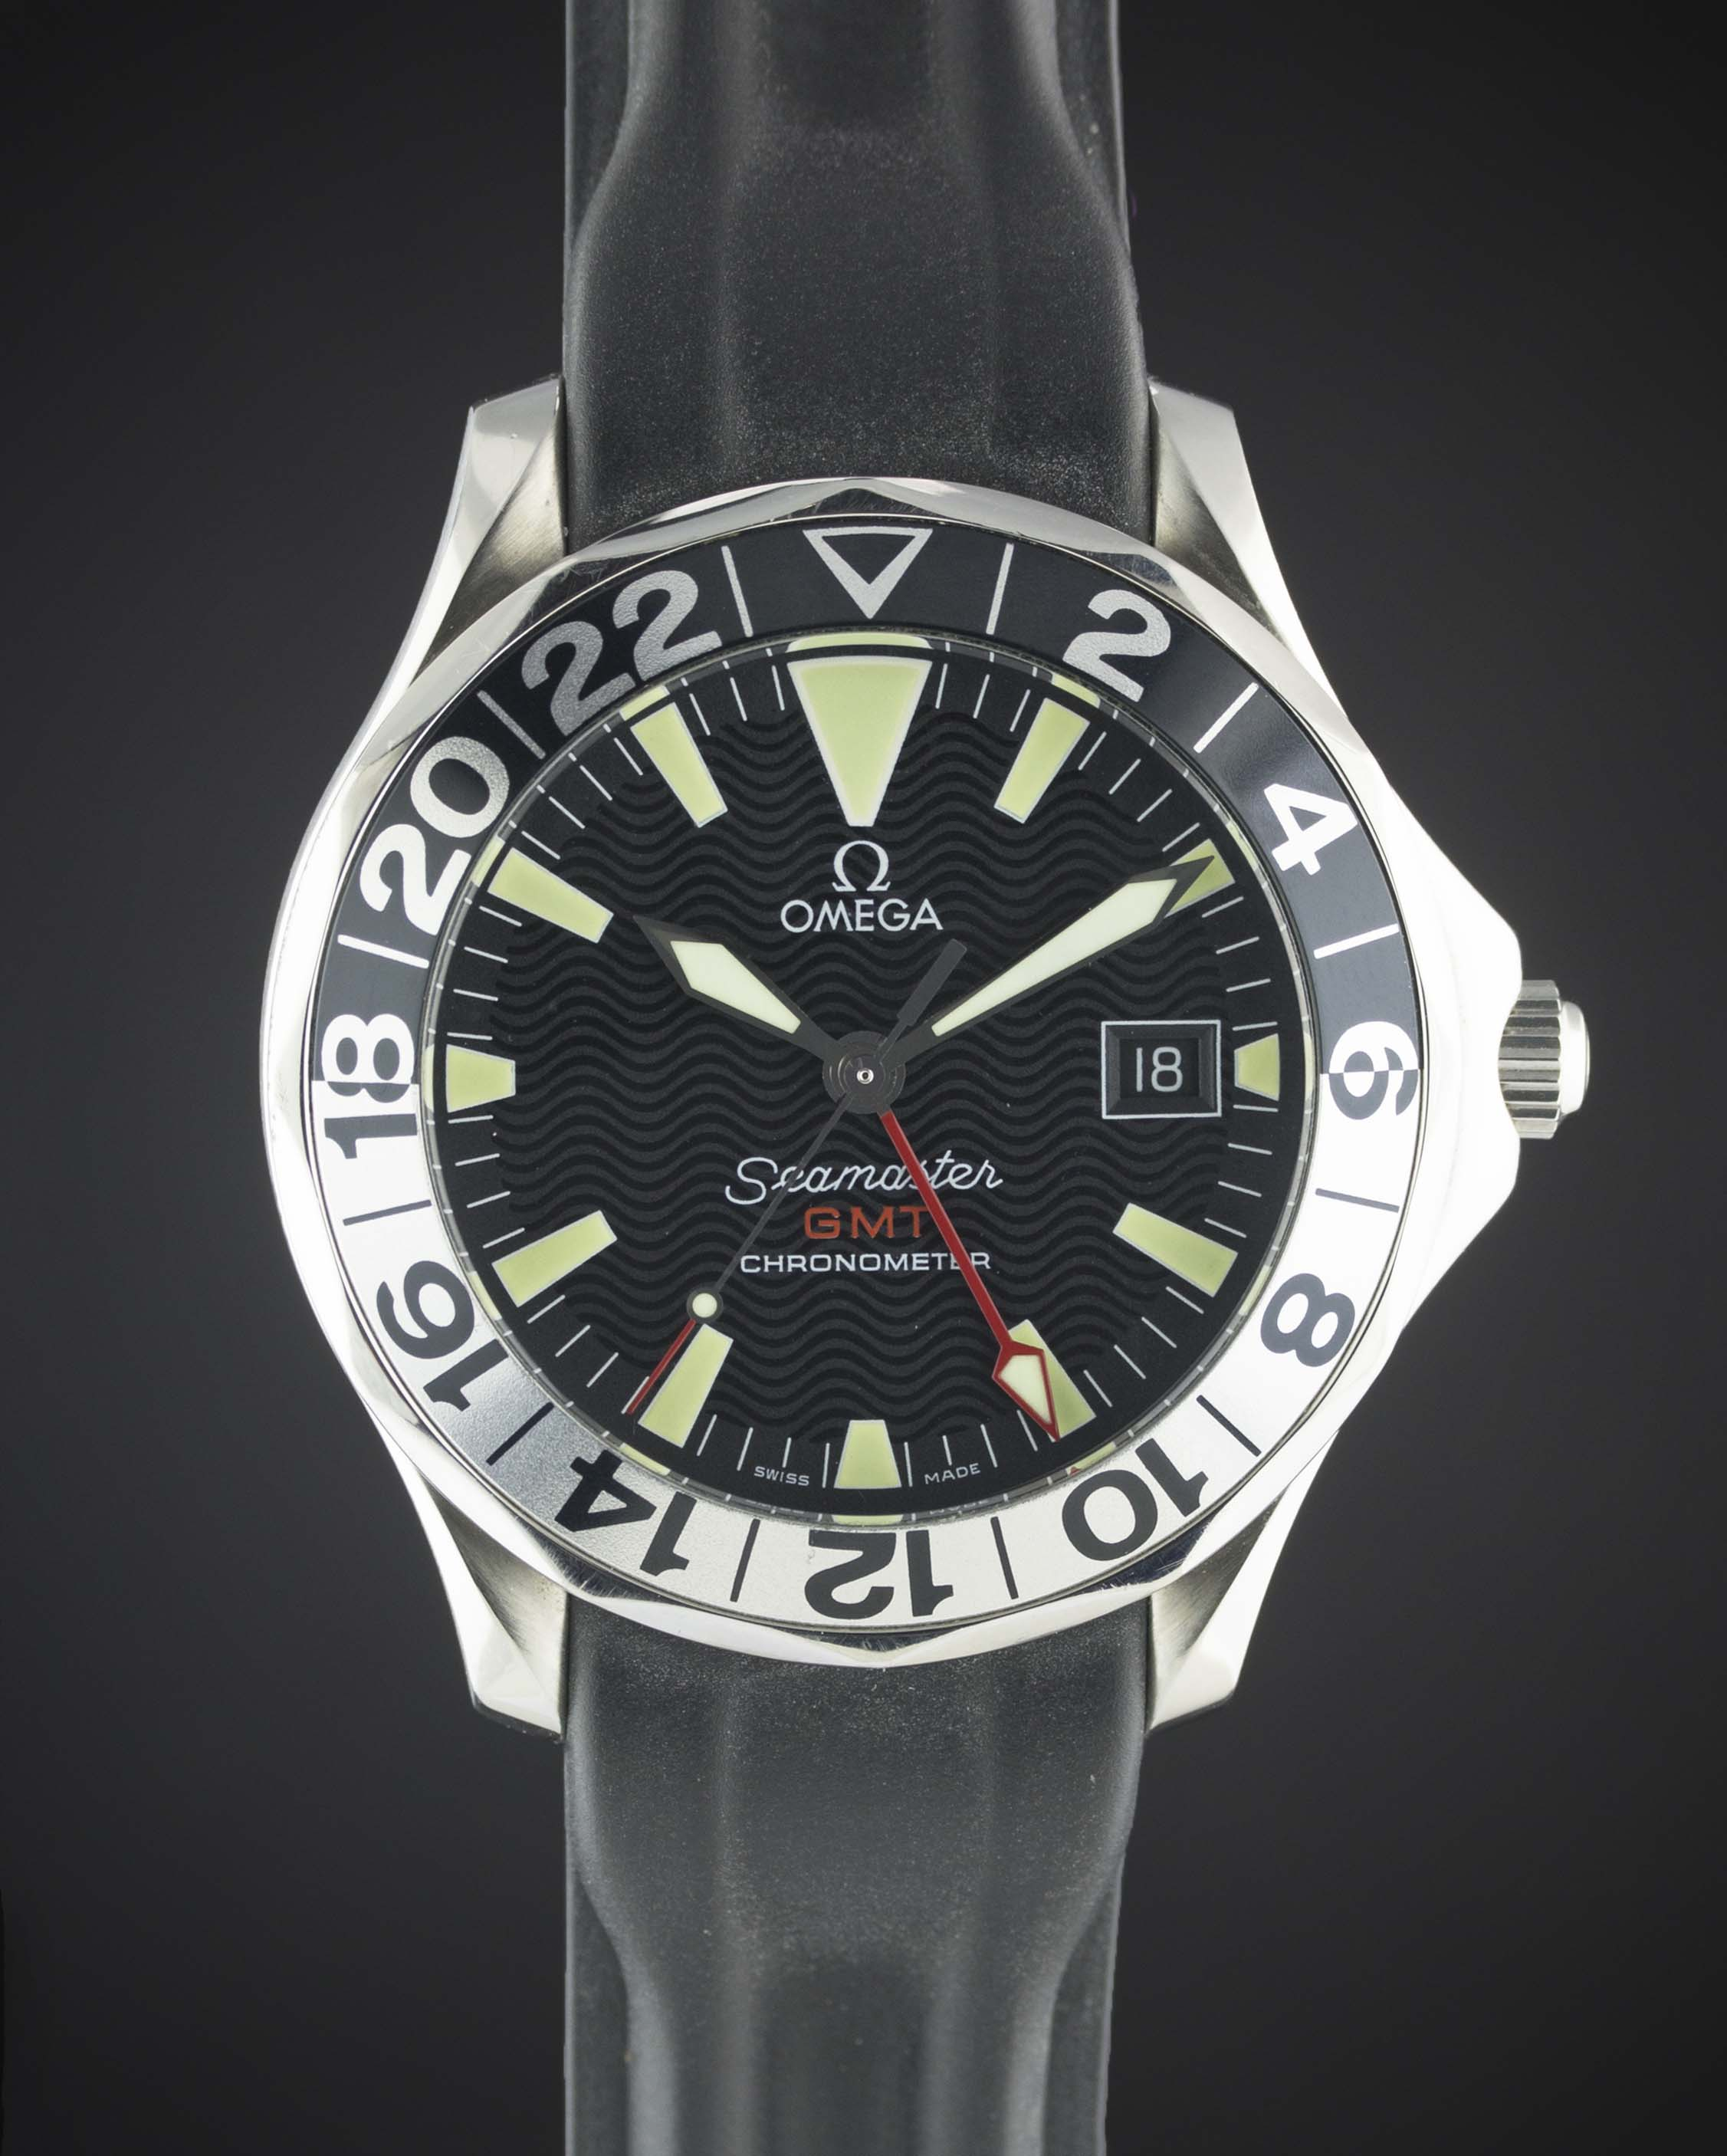 A GENTLEMAN'S STAINLESS STEEL OMEGA SEAMASTER GMT CHRONOMETER WRIST WATCH...